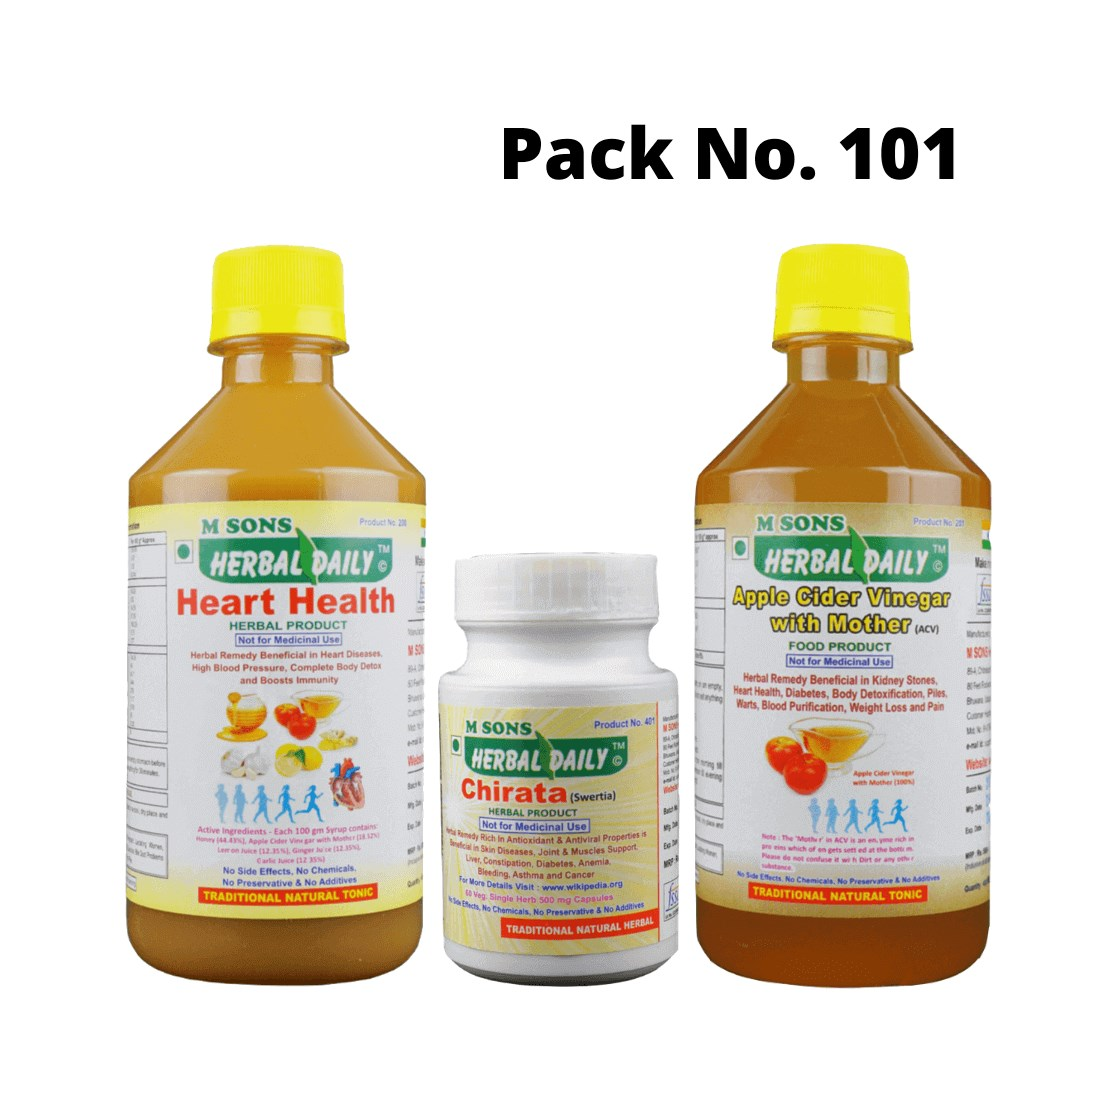 Cholesterol Control Pack